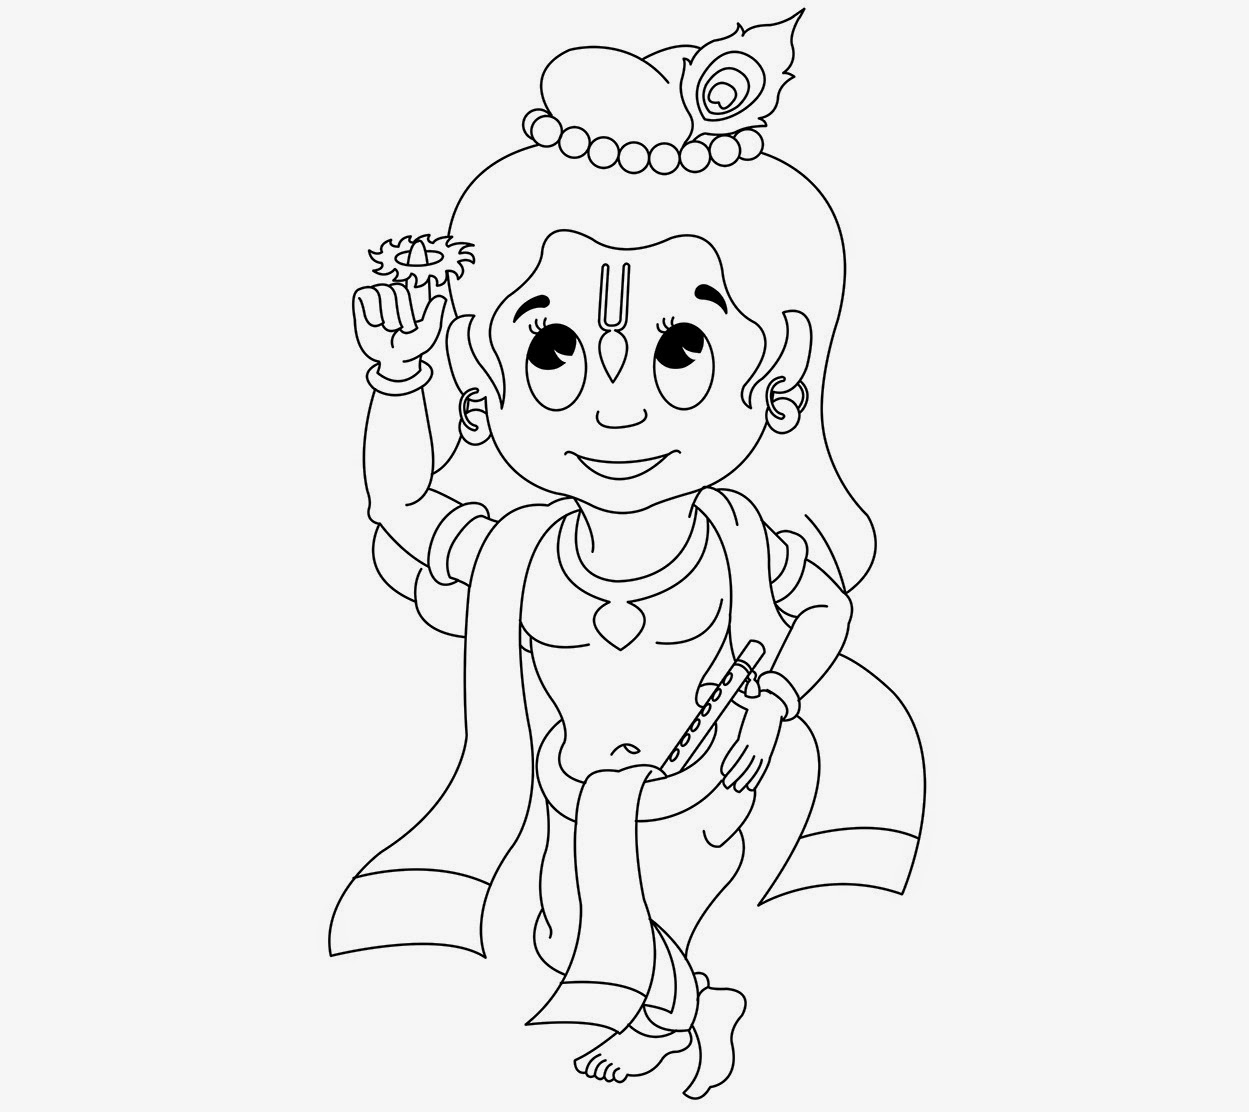 coloring pages of little krishna colour drawing free hd wallpapers little krishna for kid little coloring of krishna pages